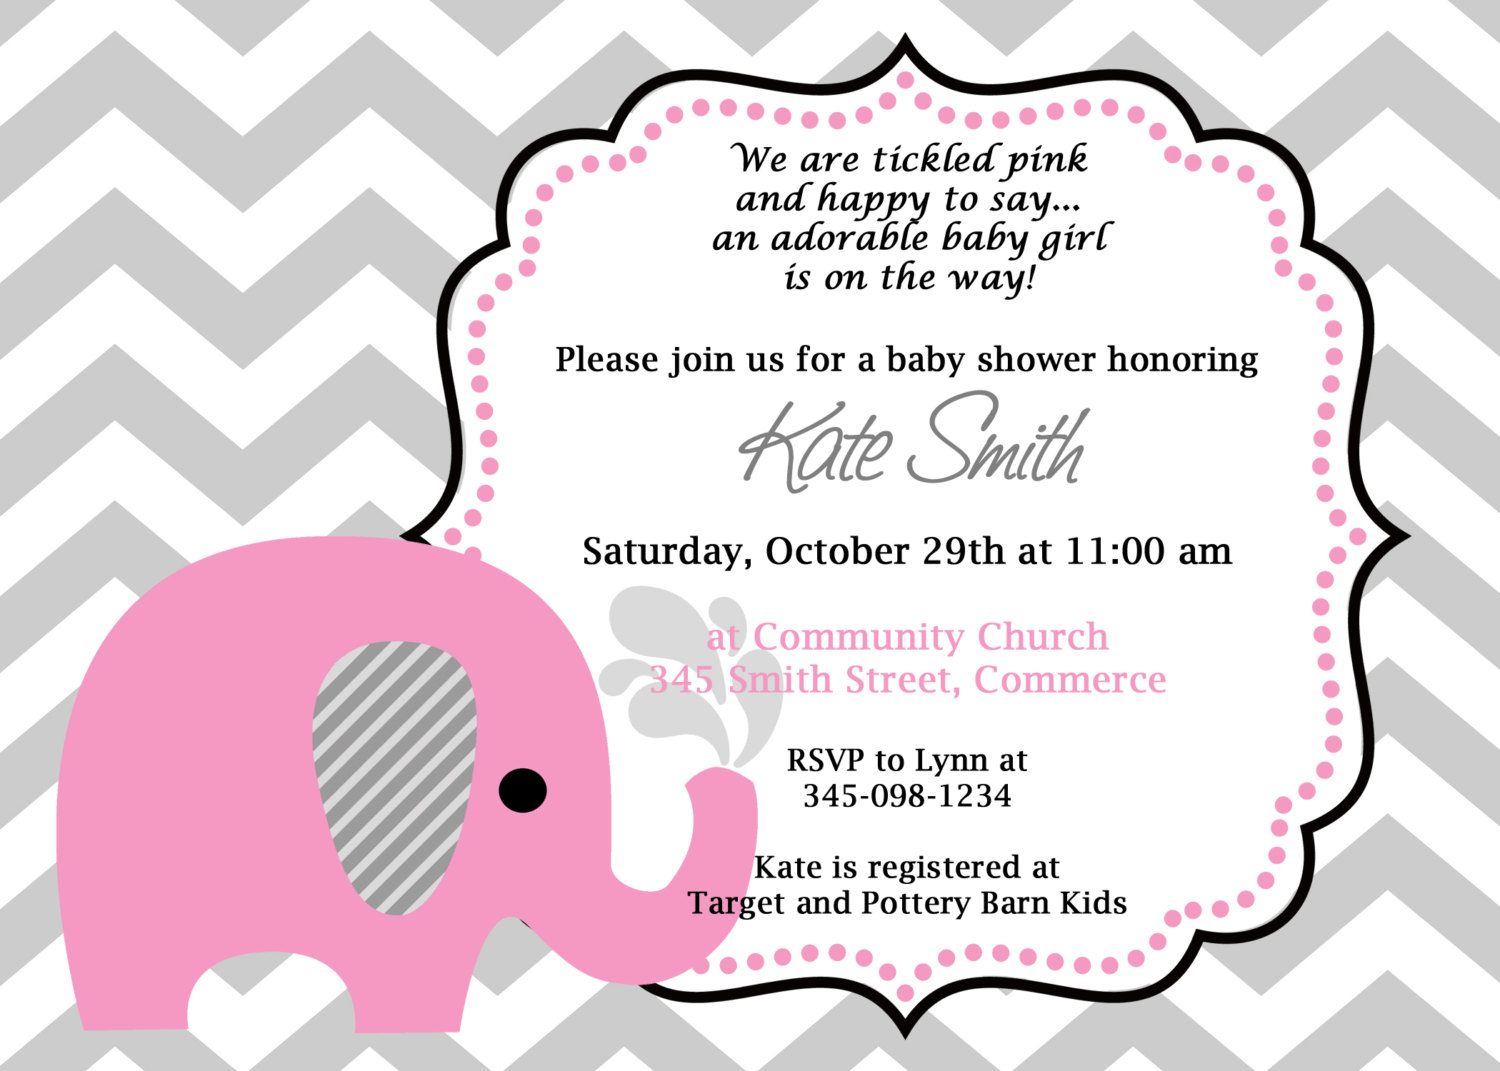 Full Size of Baby Shower:baby Shower Halls With Baby Shower At The Park Plus Recuerdos De Baby Shower Together With Fun Baby Shower Games As Well As Baby Shower Hostess Gifts And Baby Shower Verses Arreglos Baby Shower Niño Baby Shower Hampers Baby Shower Snapchat Filter Ideas Para Baby Showers Baby Shower Wishing Well Baby Shower Notes